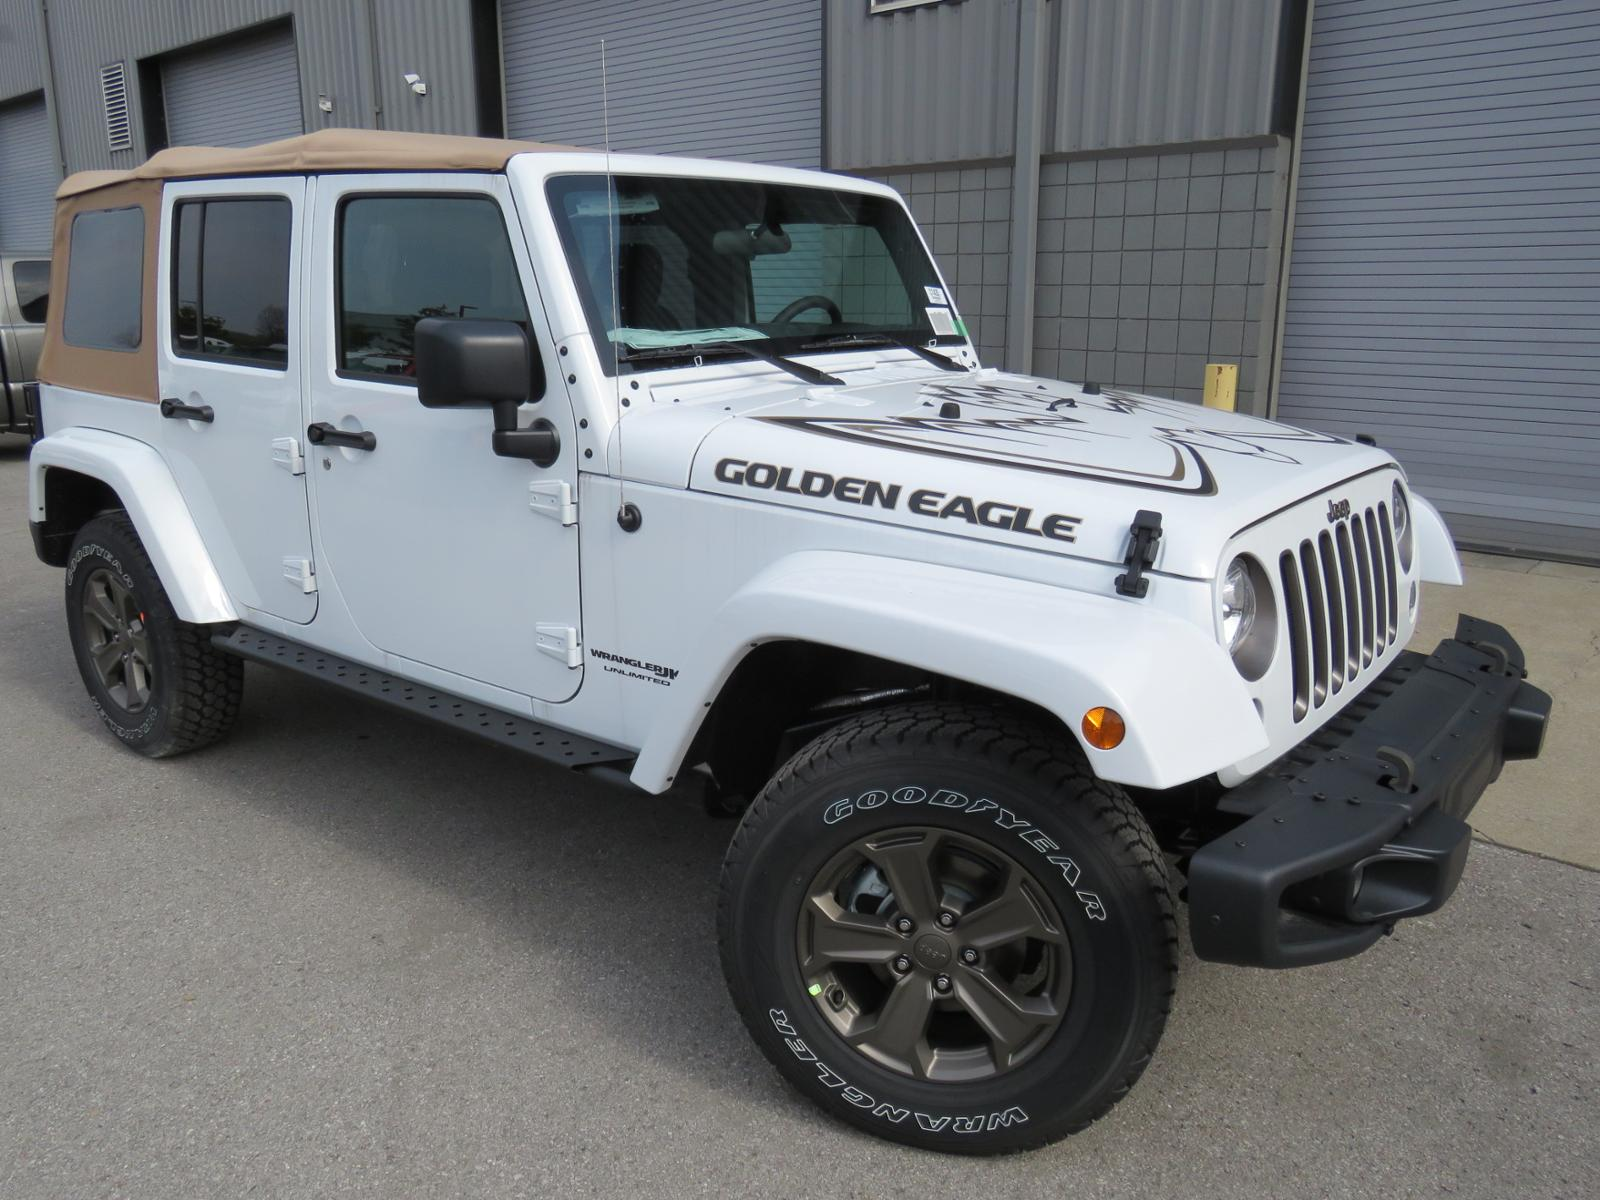 Unlimited Auto Sales >> New 2018 Jeep Wrangler JK Unlimited Golden Eagle Sport Utility #C1435 | Freeland Auto